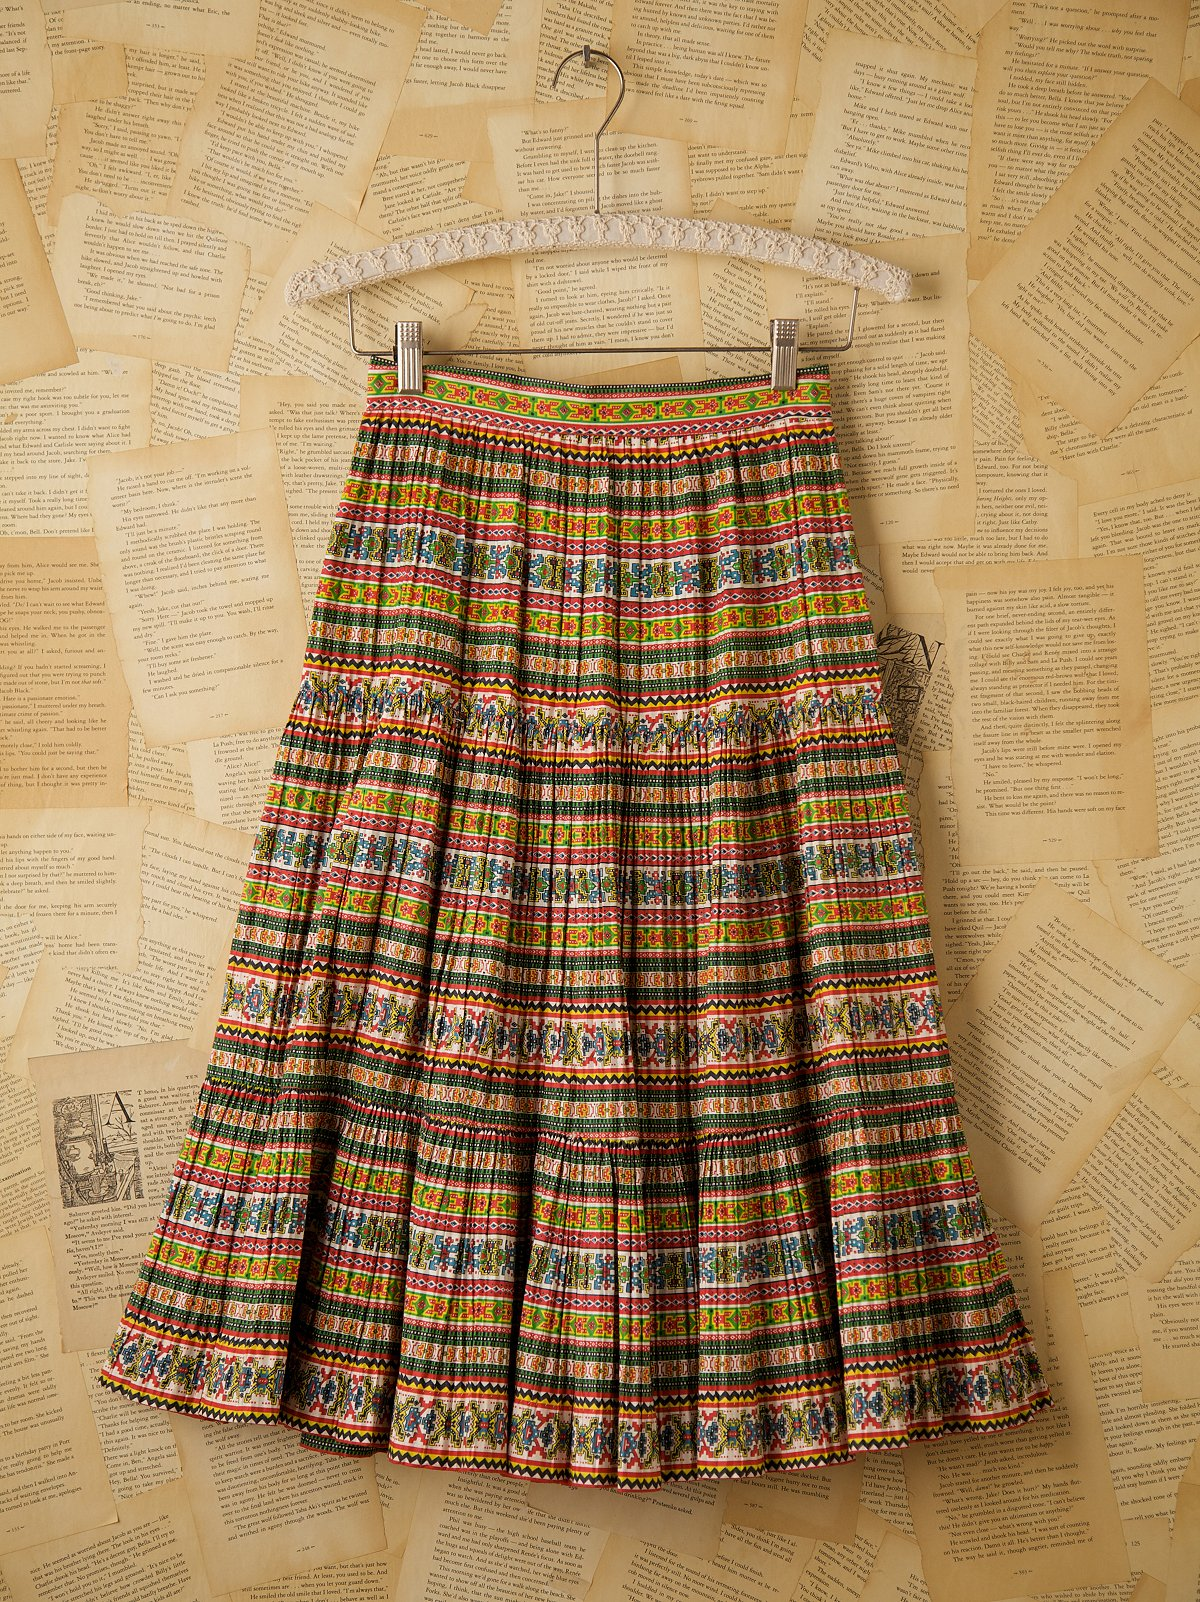 Vintage 1940s Printed Skirt with Pleats